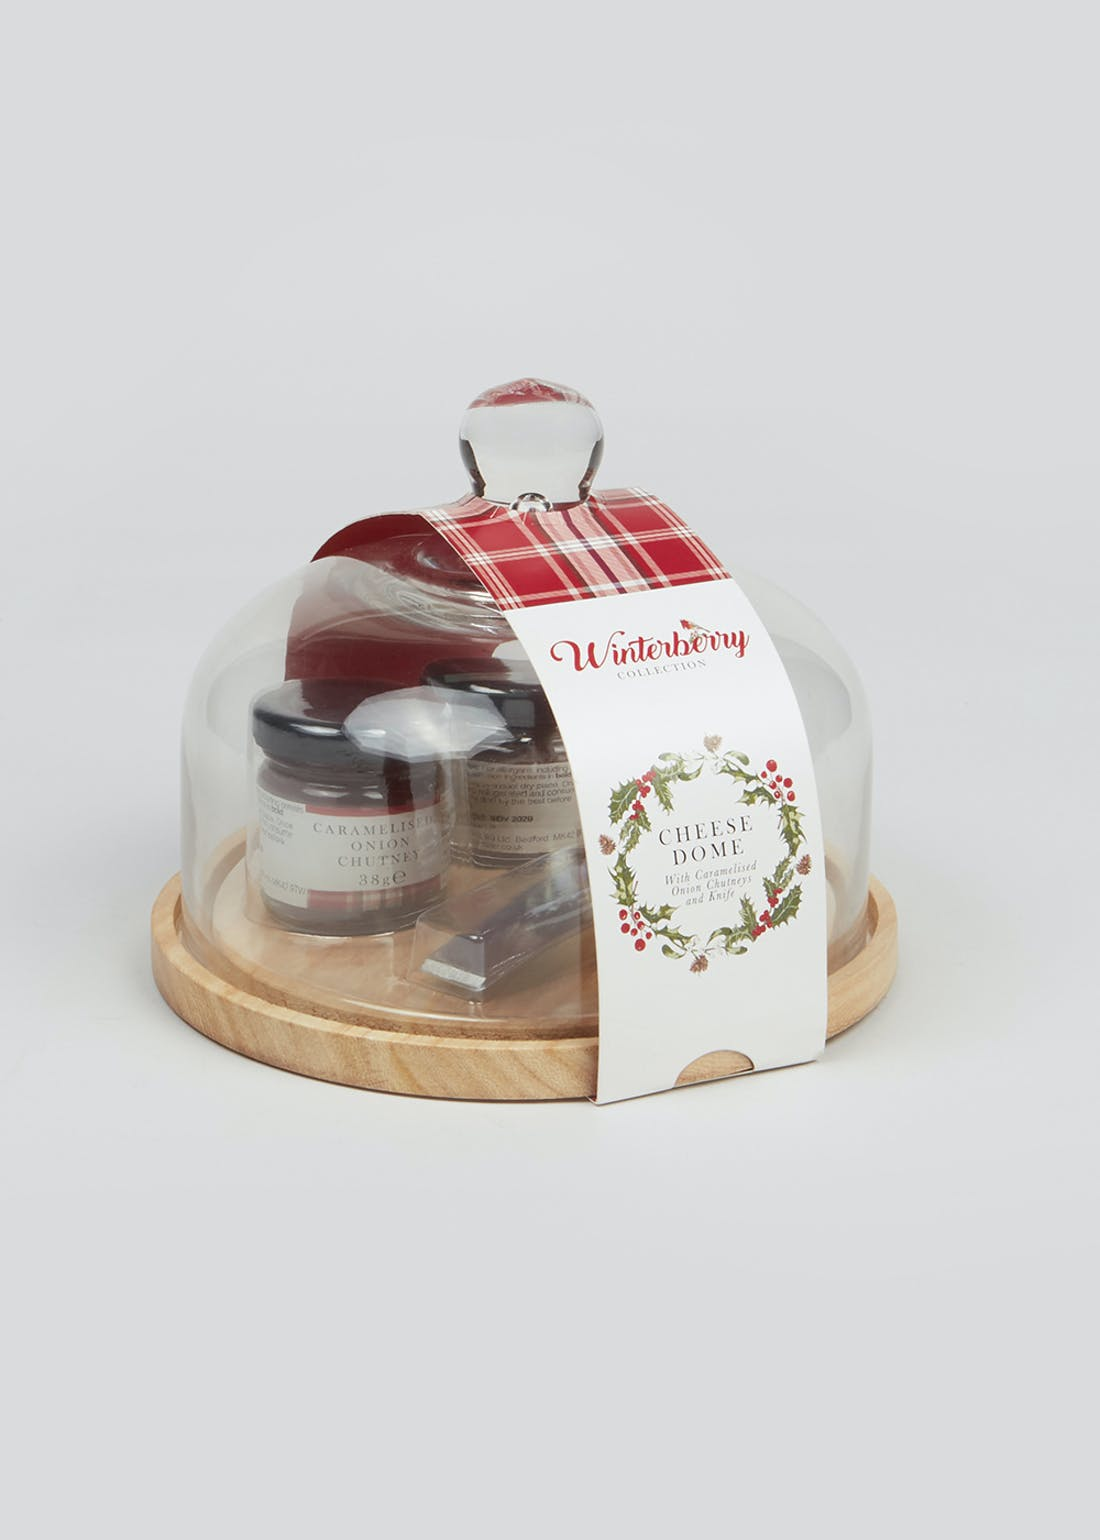 Cheese Board Gift Set (17cm x 17cm x 14cm)